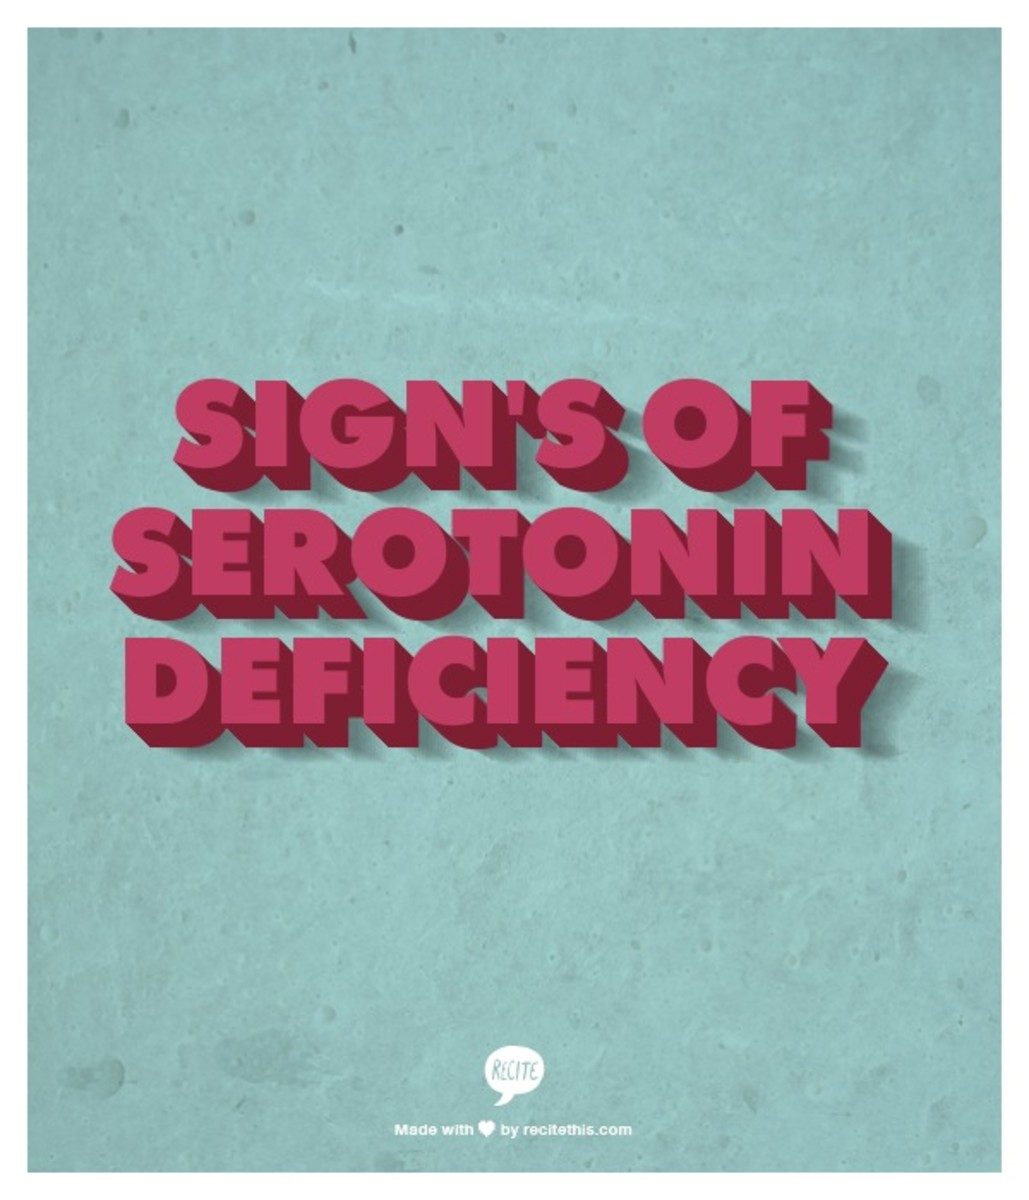 14 Sign's Of Serotonin Imbalance